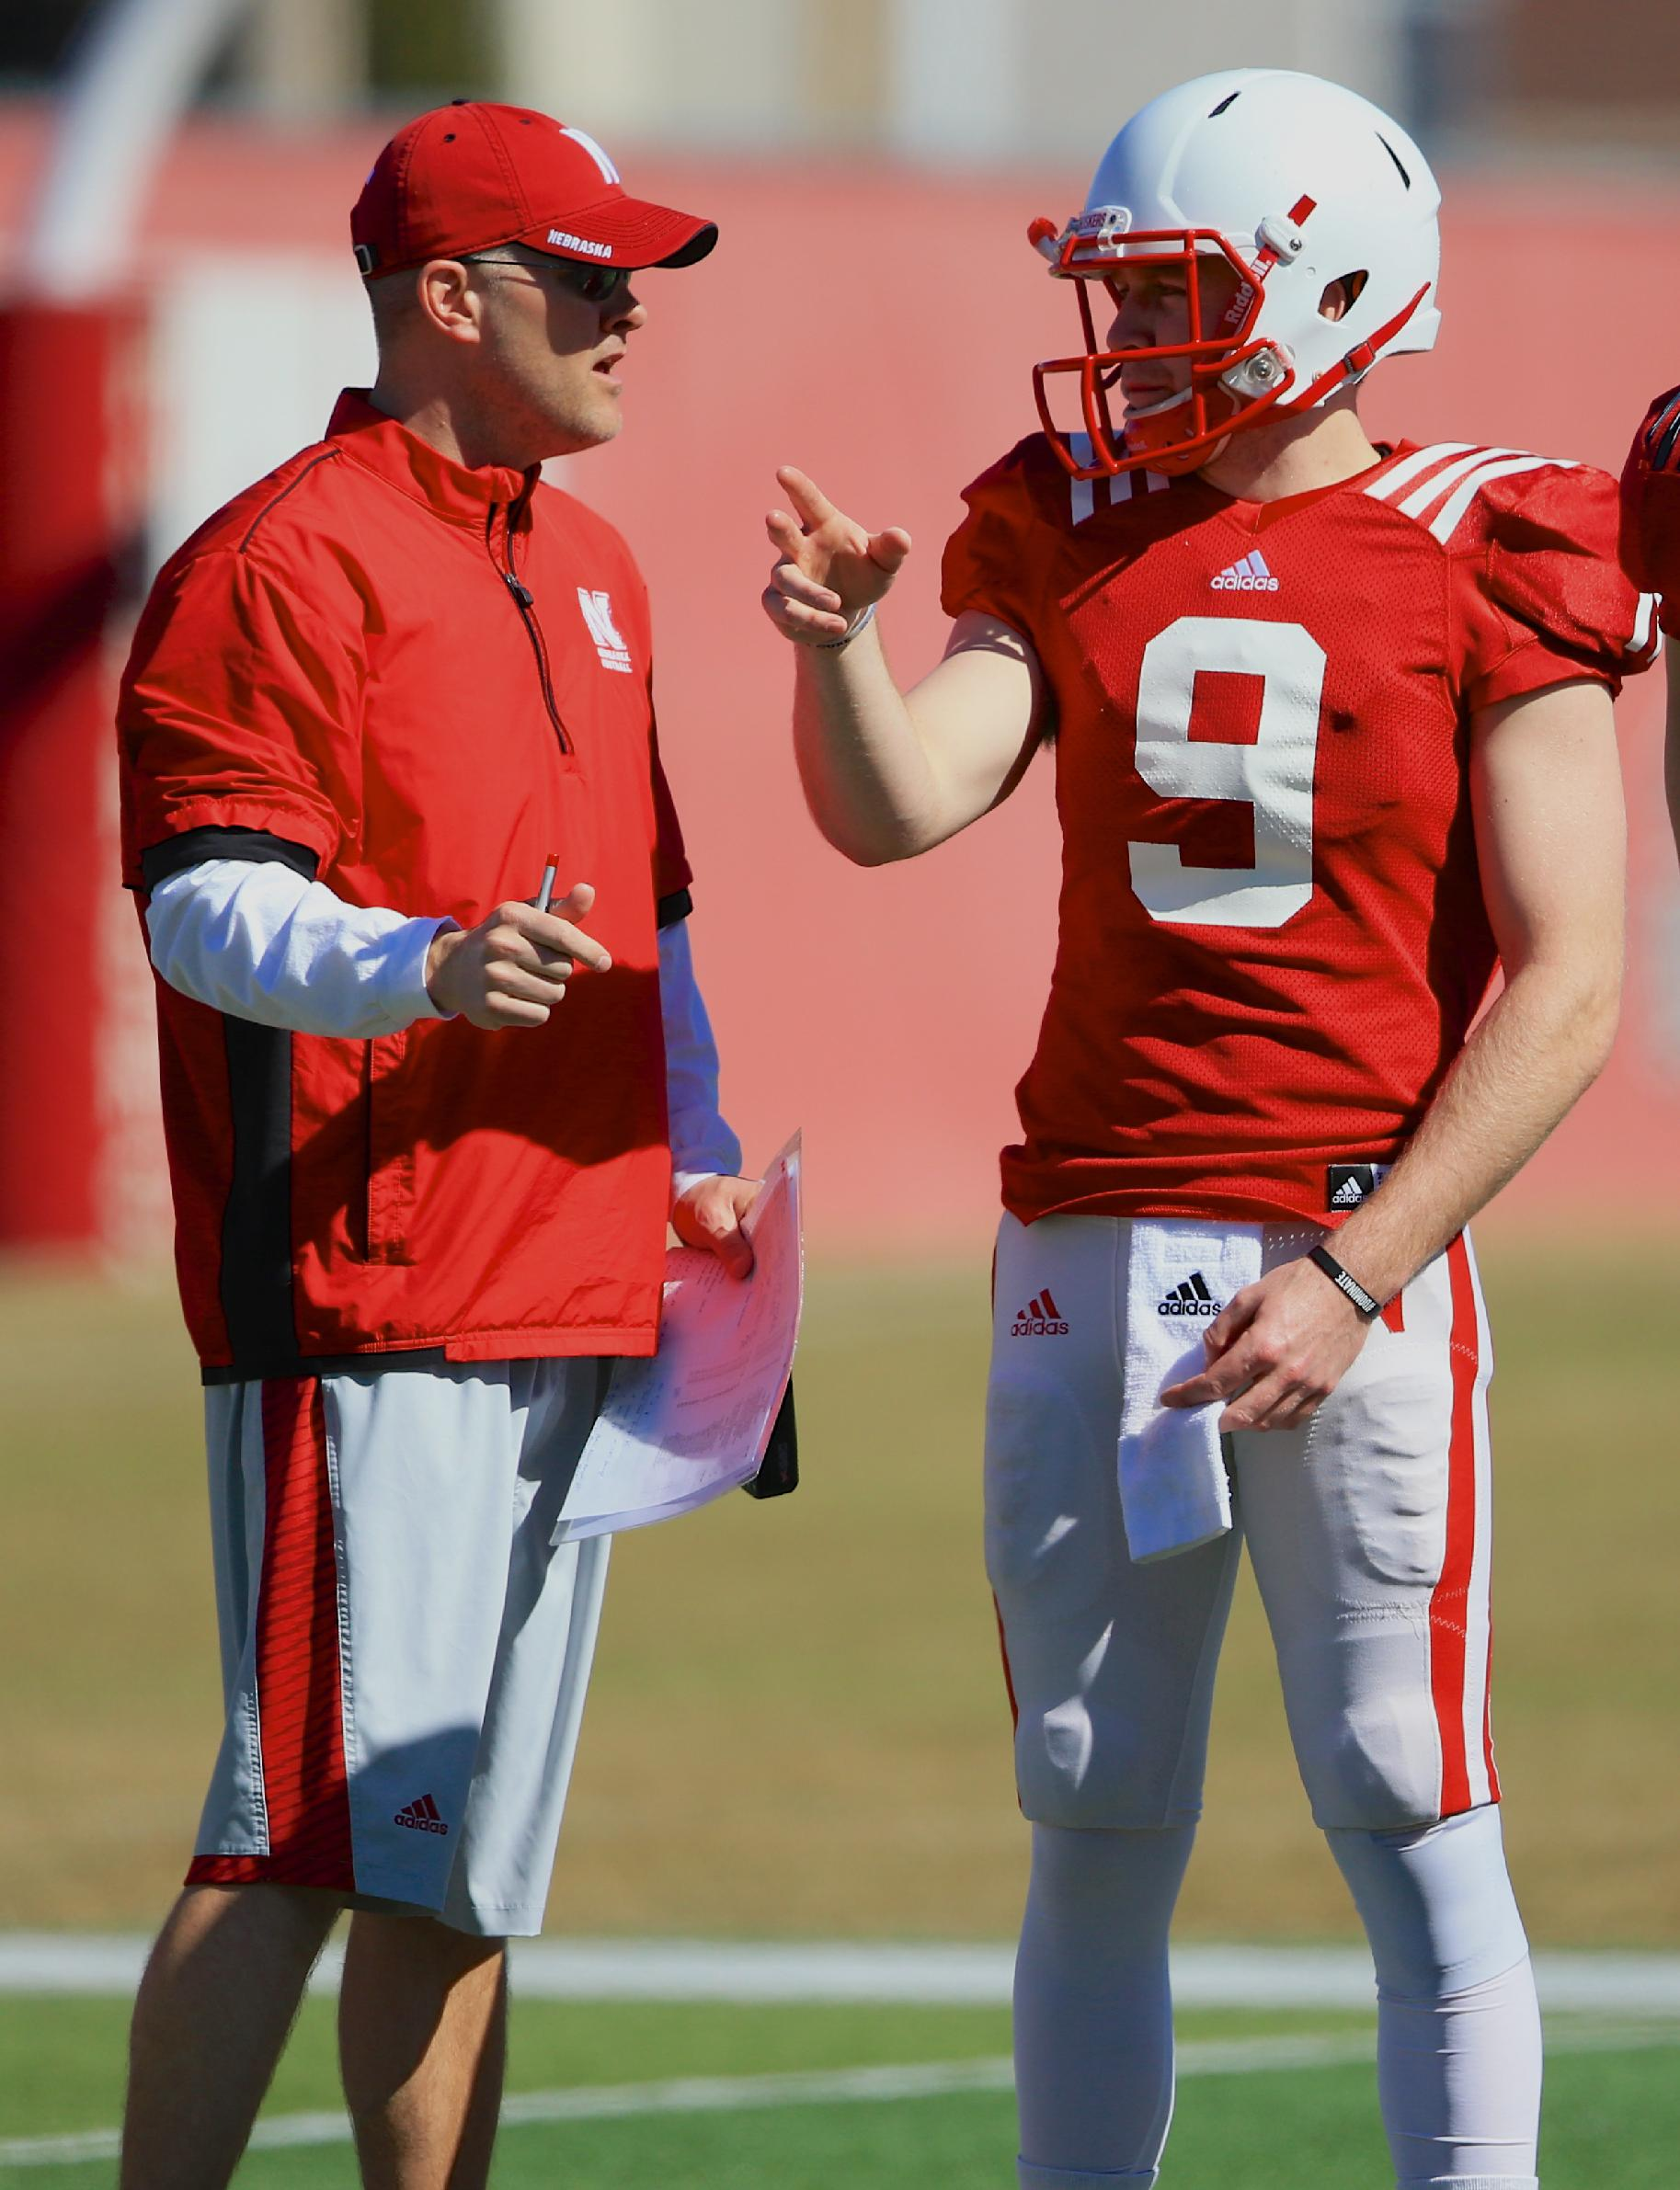 After coaching Eli, Langsdorf must be patient with Huskers